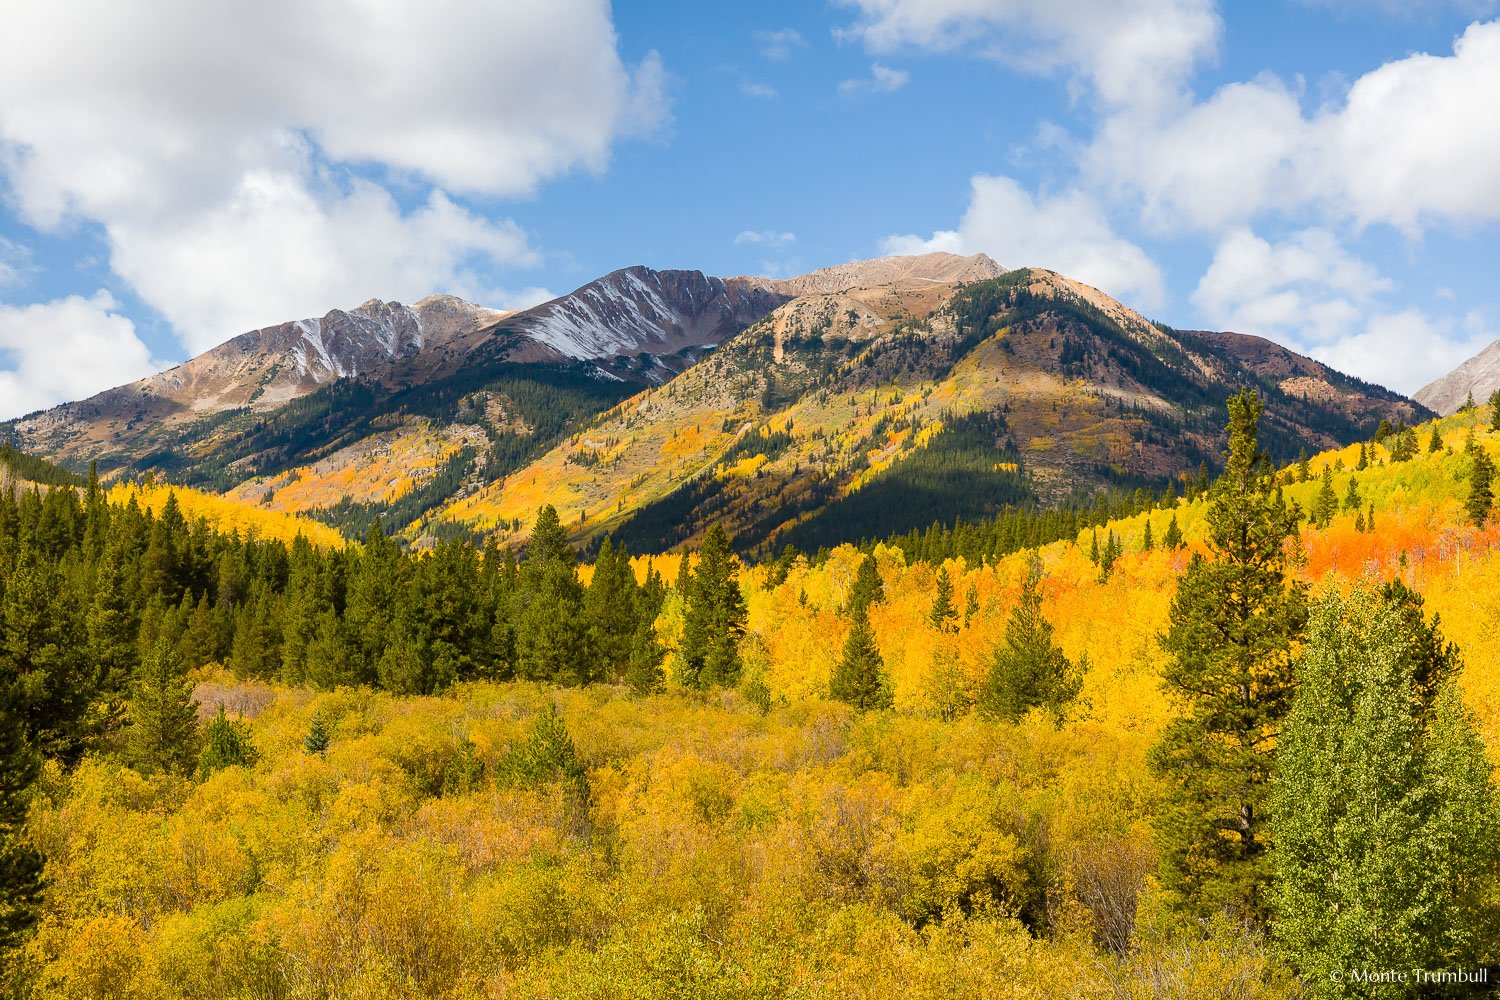 MT-20170918-105450-0006-Autumn-Virginia-Peak-San-Isabel-National-Forest-Winfield-Colorado.jpg